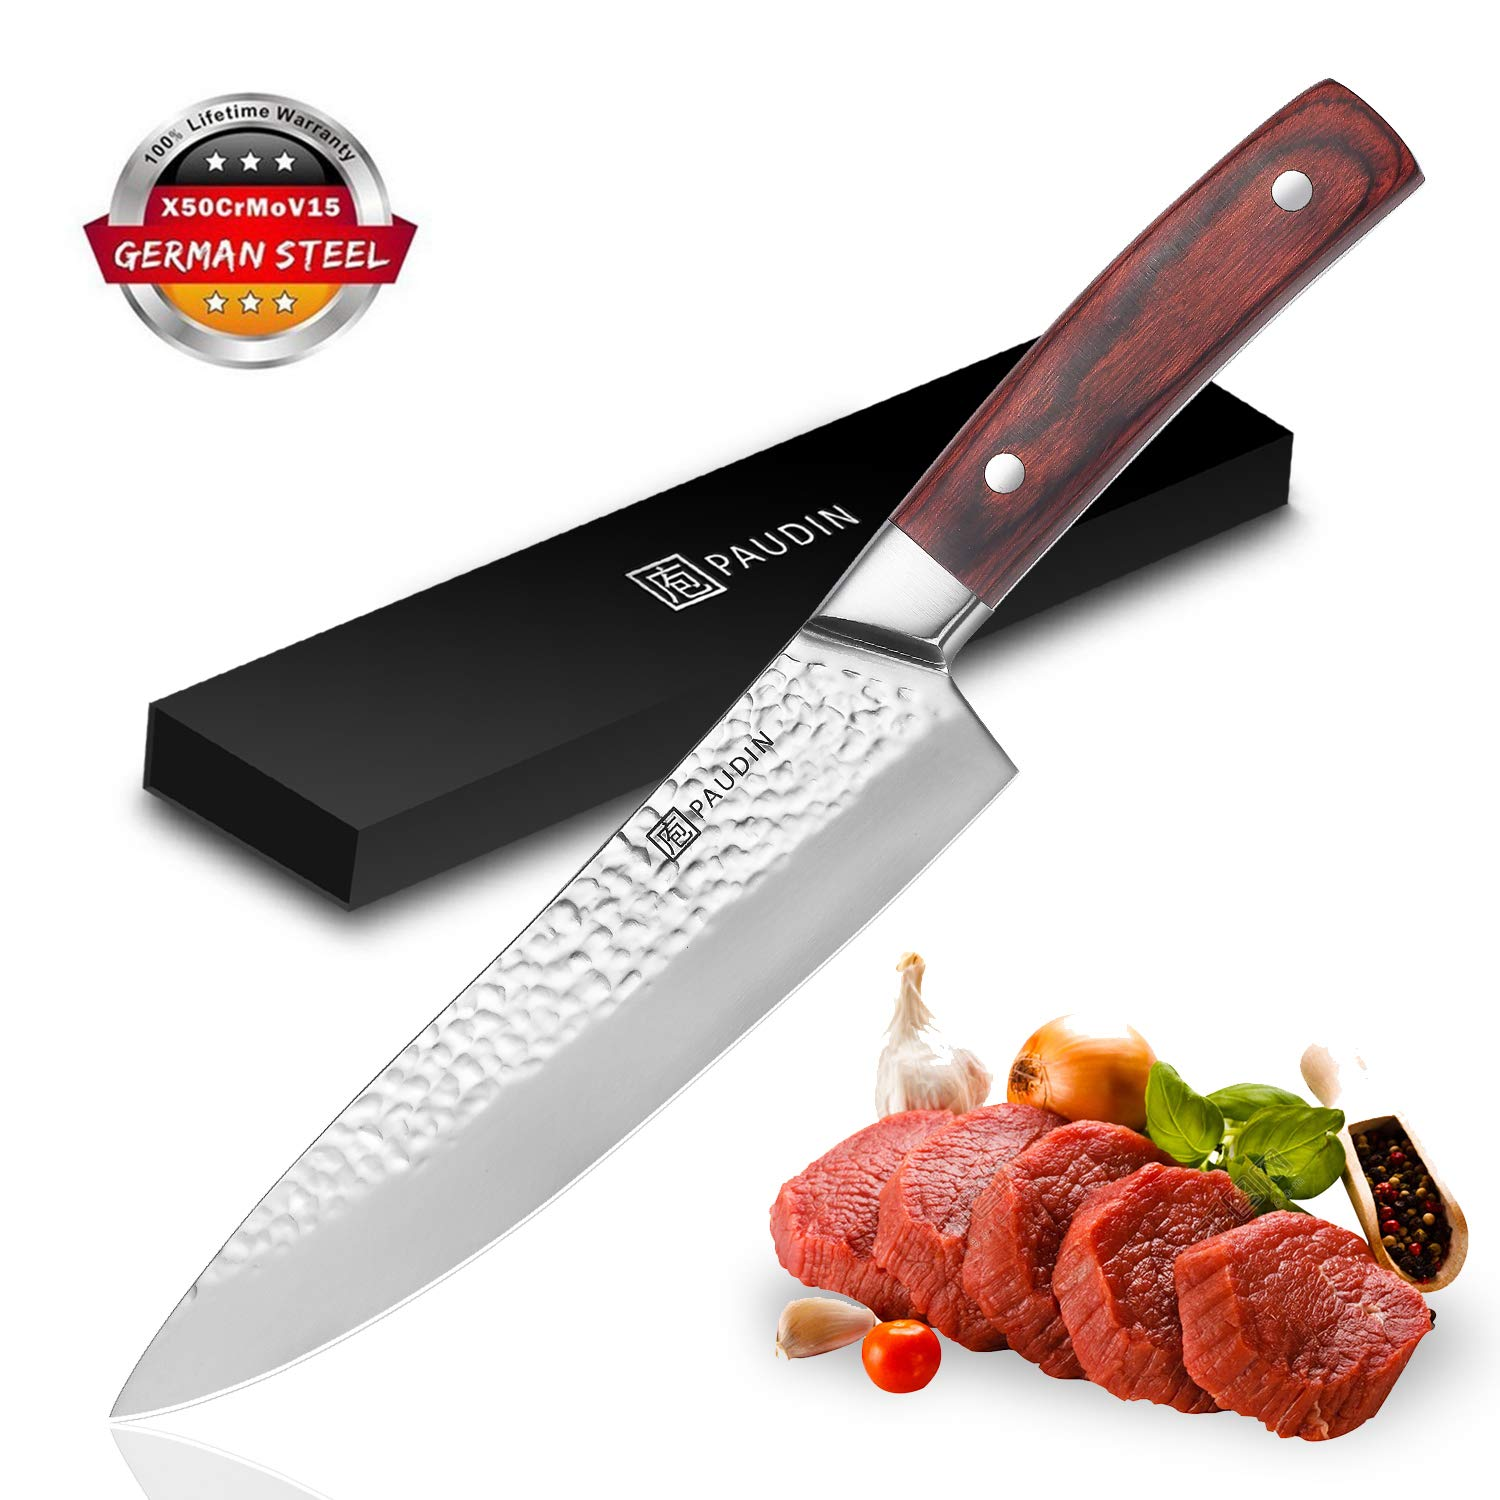 PAUDIN 8 inch Chef Knife - Pro Kitchen Knife High Carbon Stainless Steel 7Cr17Mov Hammer Pattern Sharp Knife with Ergonomic Handle, Best Kitchen Knife for Dealing with Meat, Fruit and Vegetables